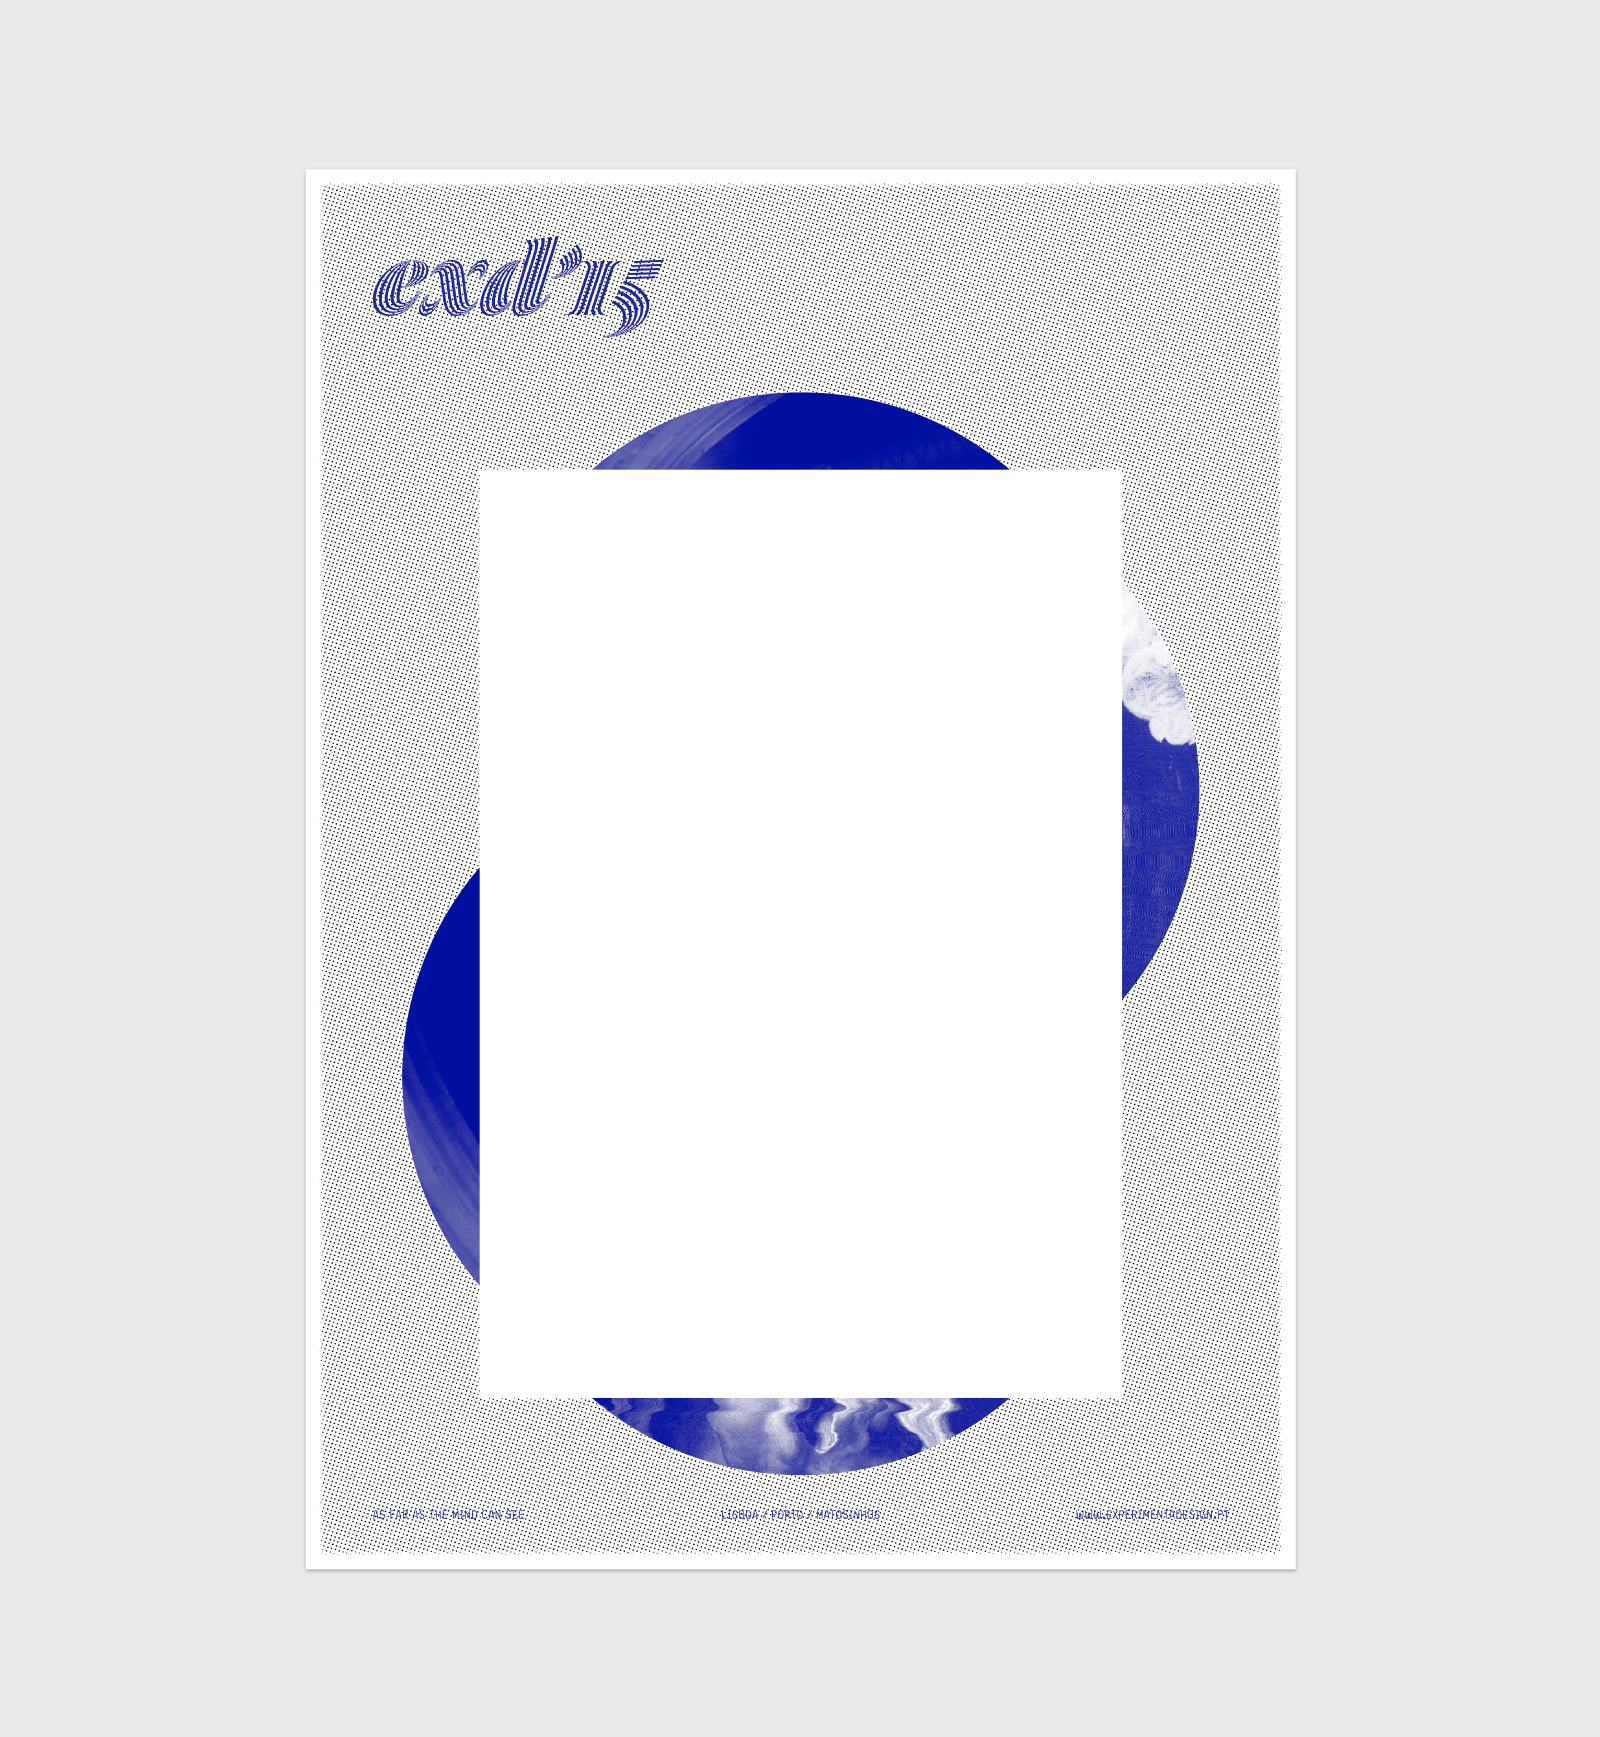 EXD'15 ⟐ Merchandising ⟐ Risograph poster